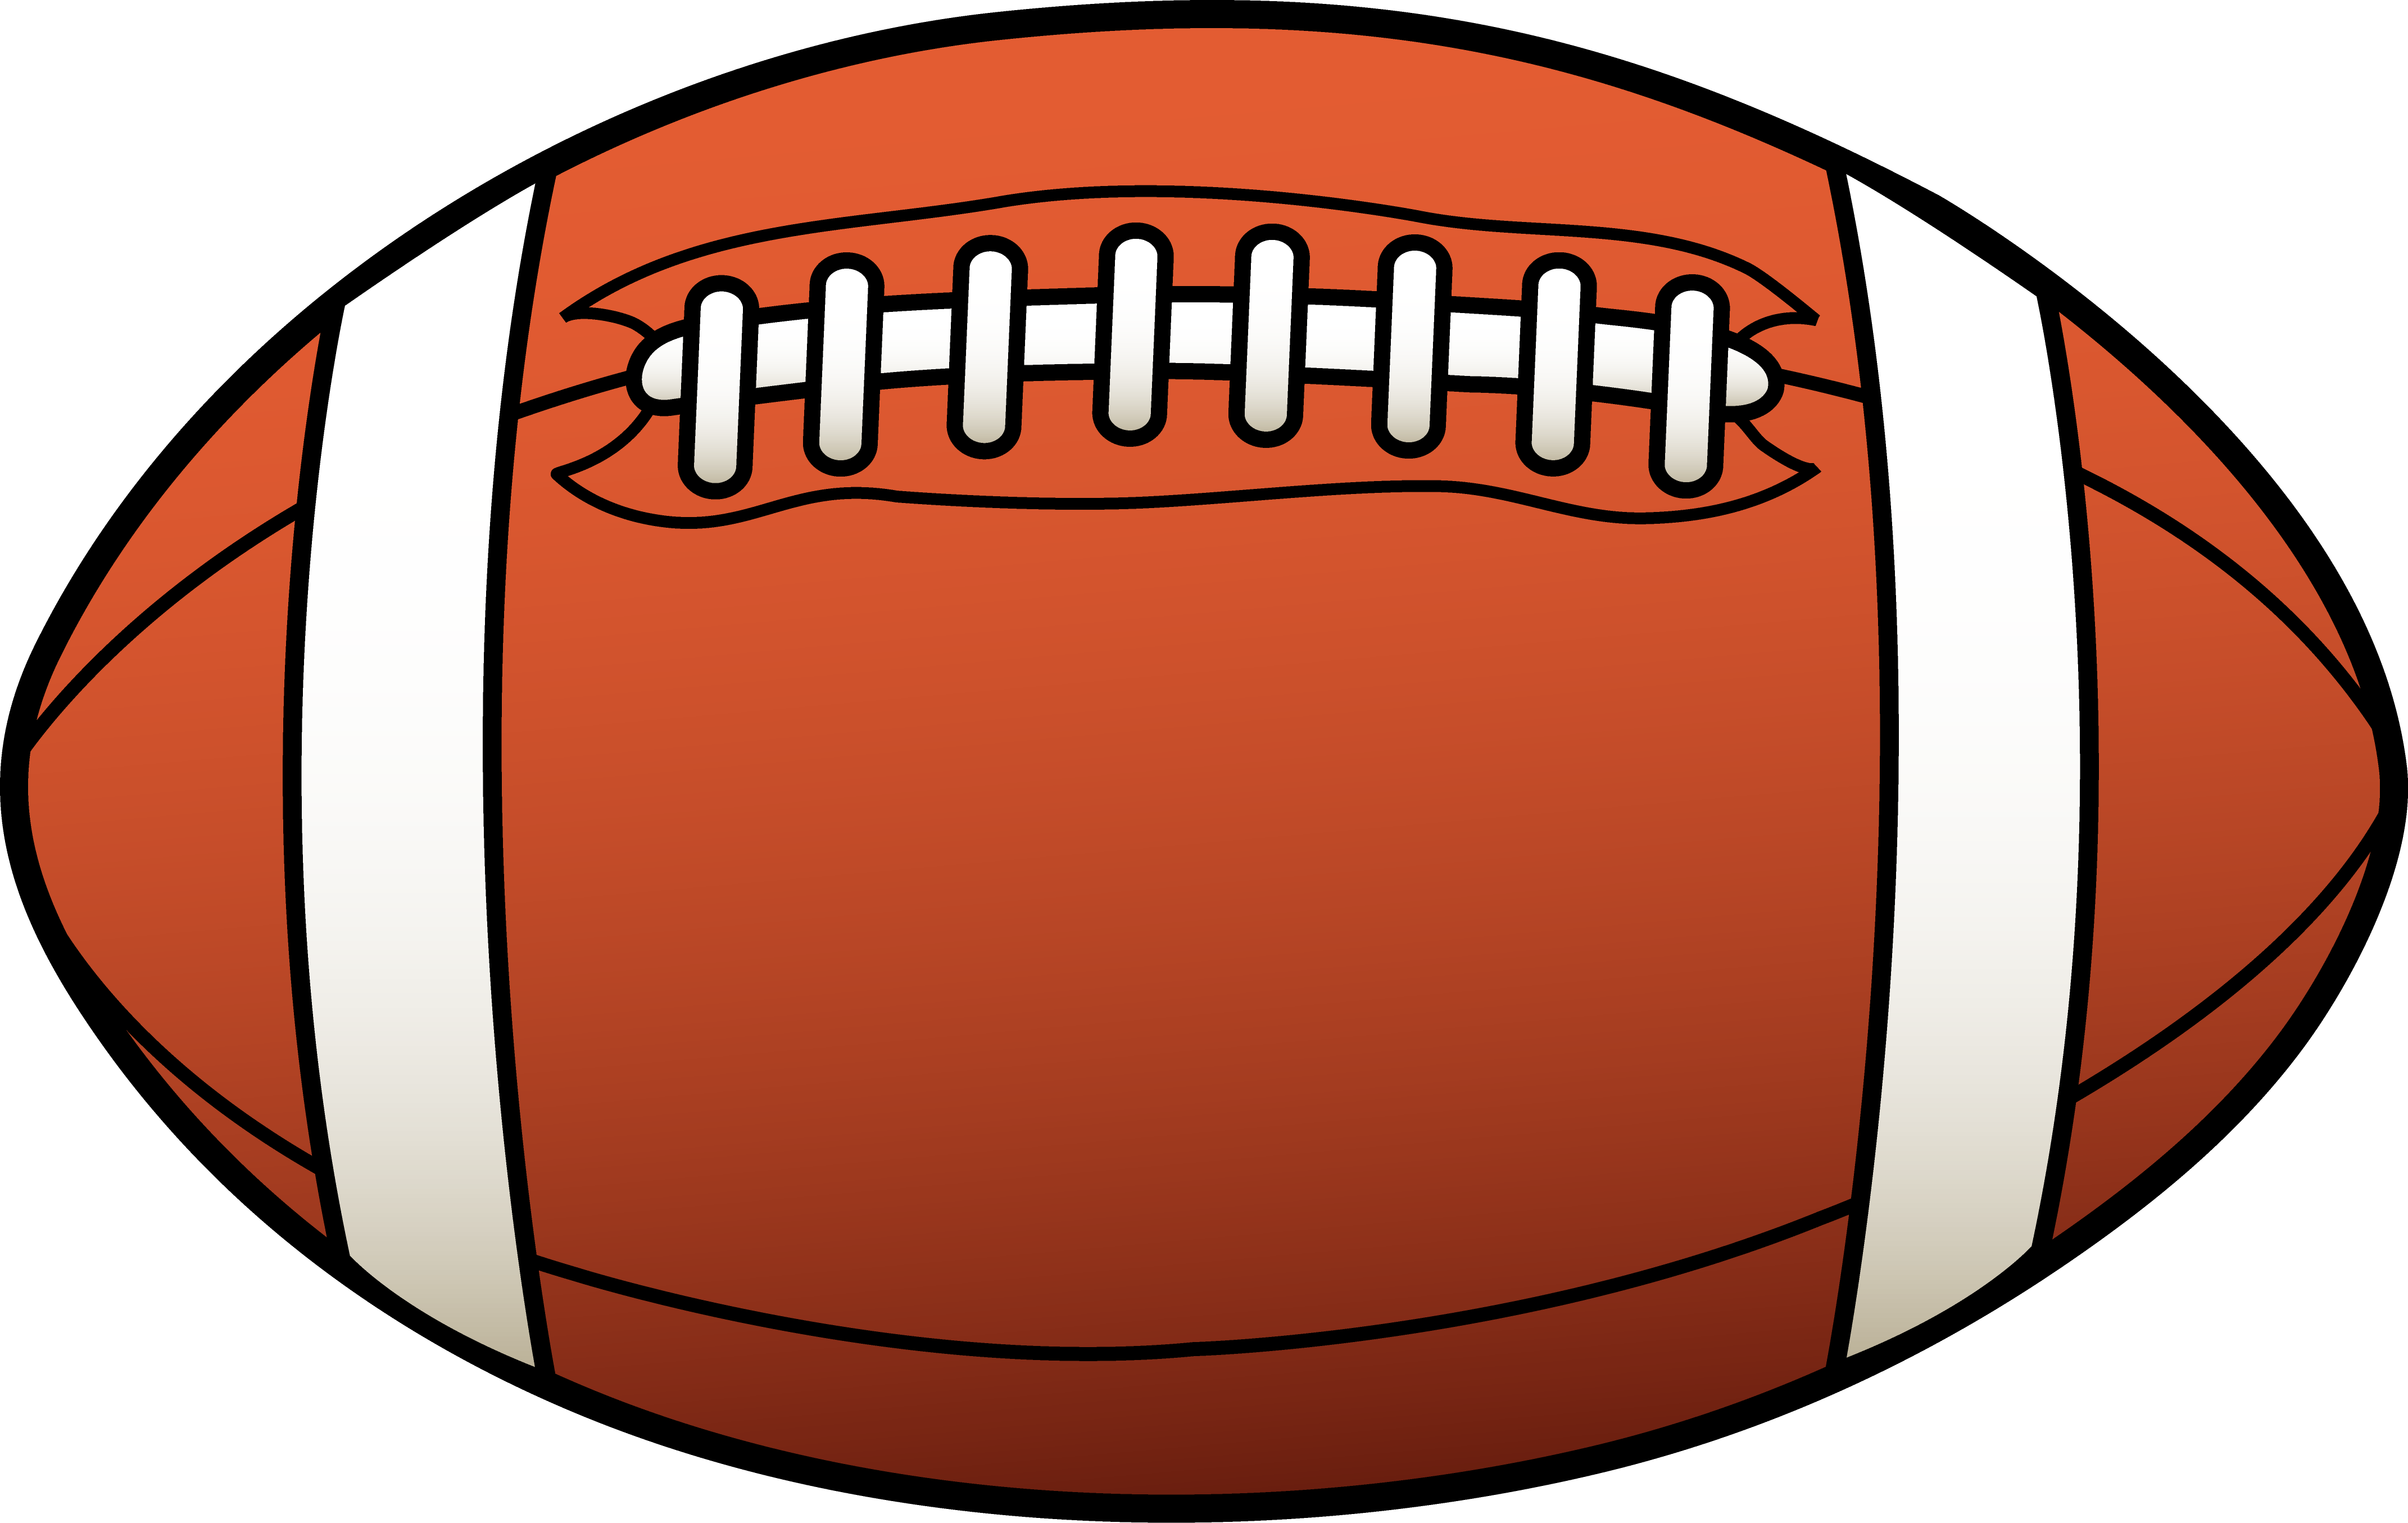 American Football Ball Clipart PNG Image